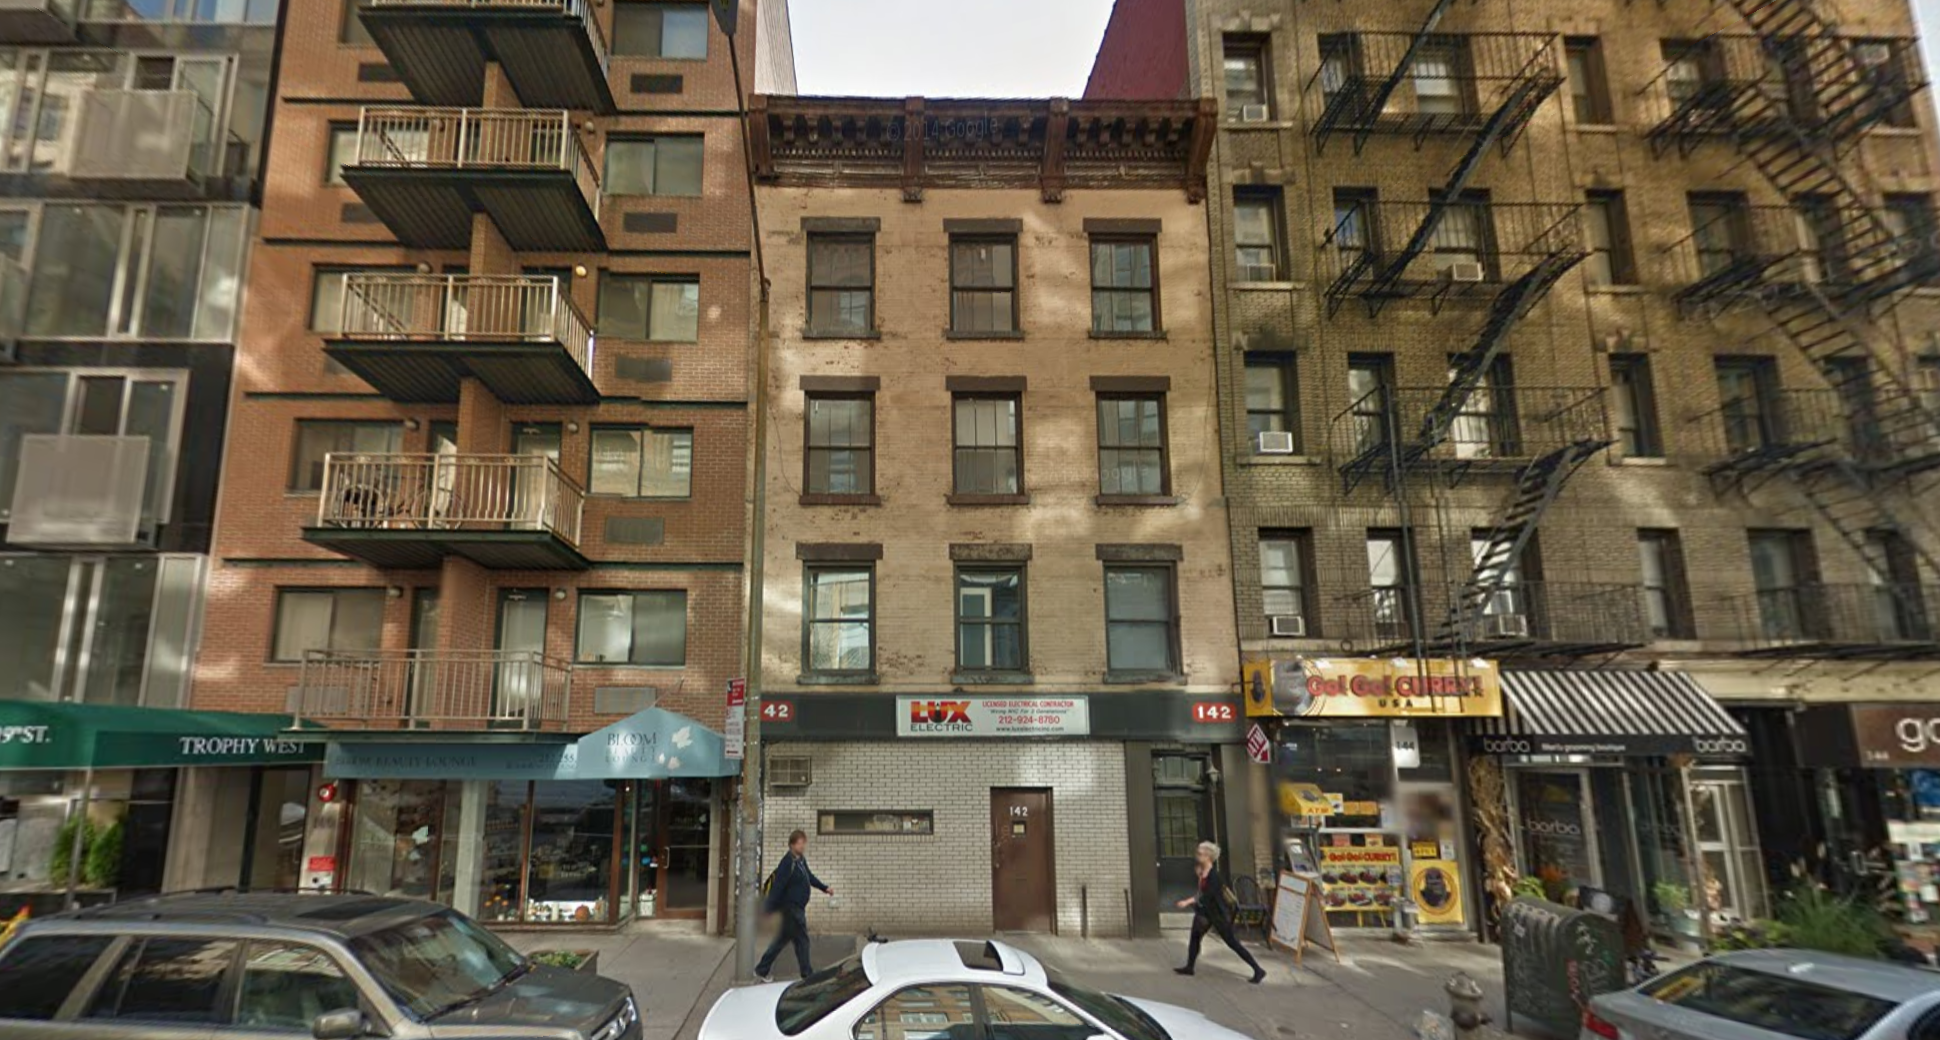 142 West 19th Street, image via Google Maps